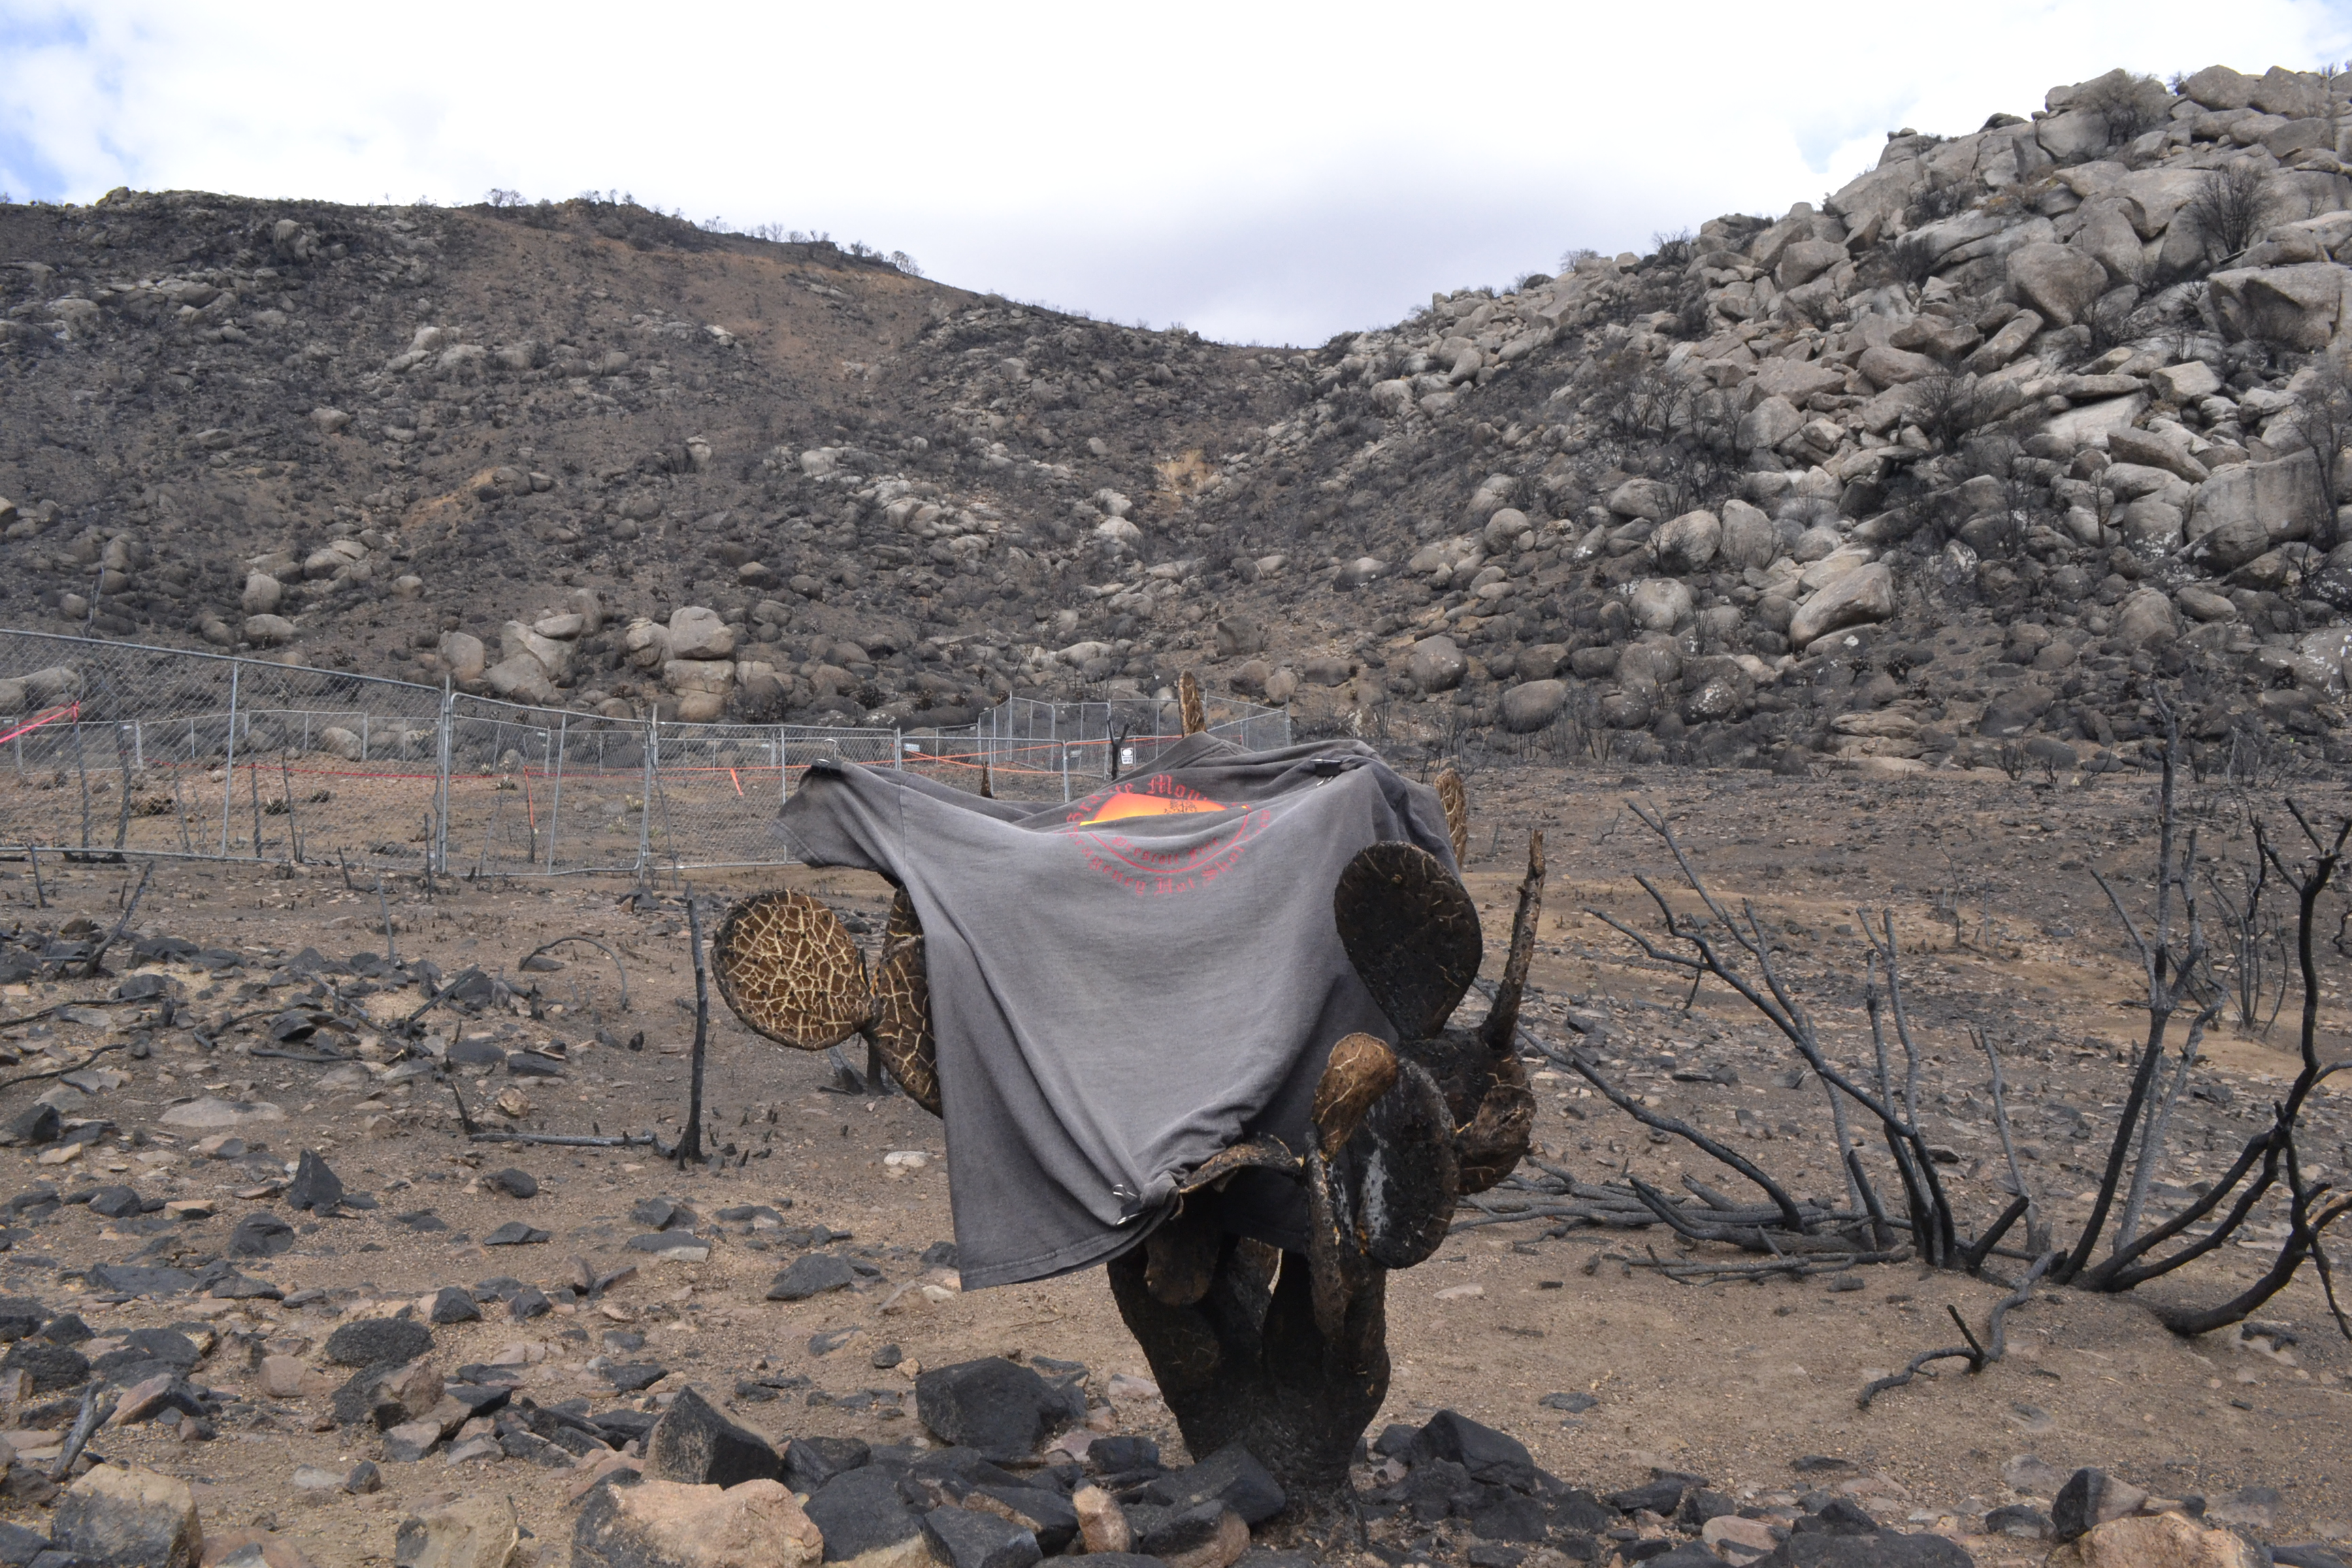 A Granite Mountain Hotshot t-shirt is draped over a cactus. The shelter deployment site is behind. The crew descended into the box canyon from the saddle on the ridge.